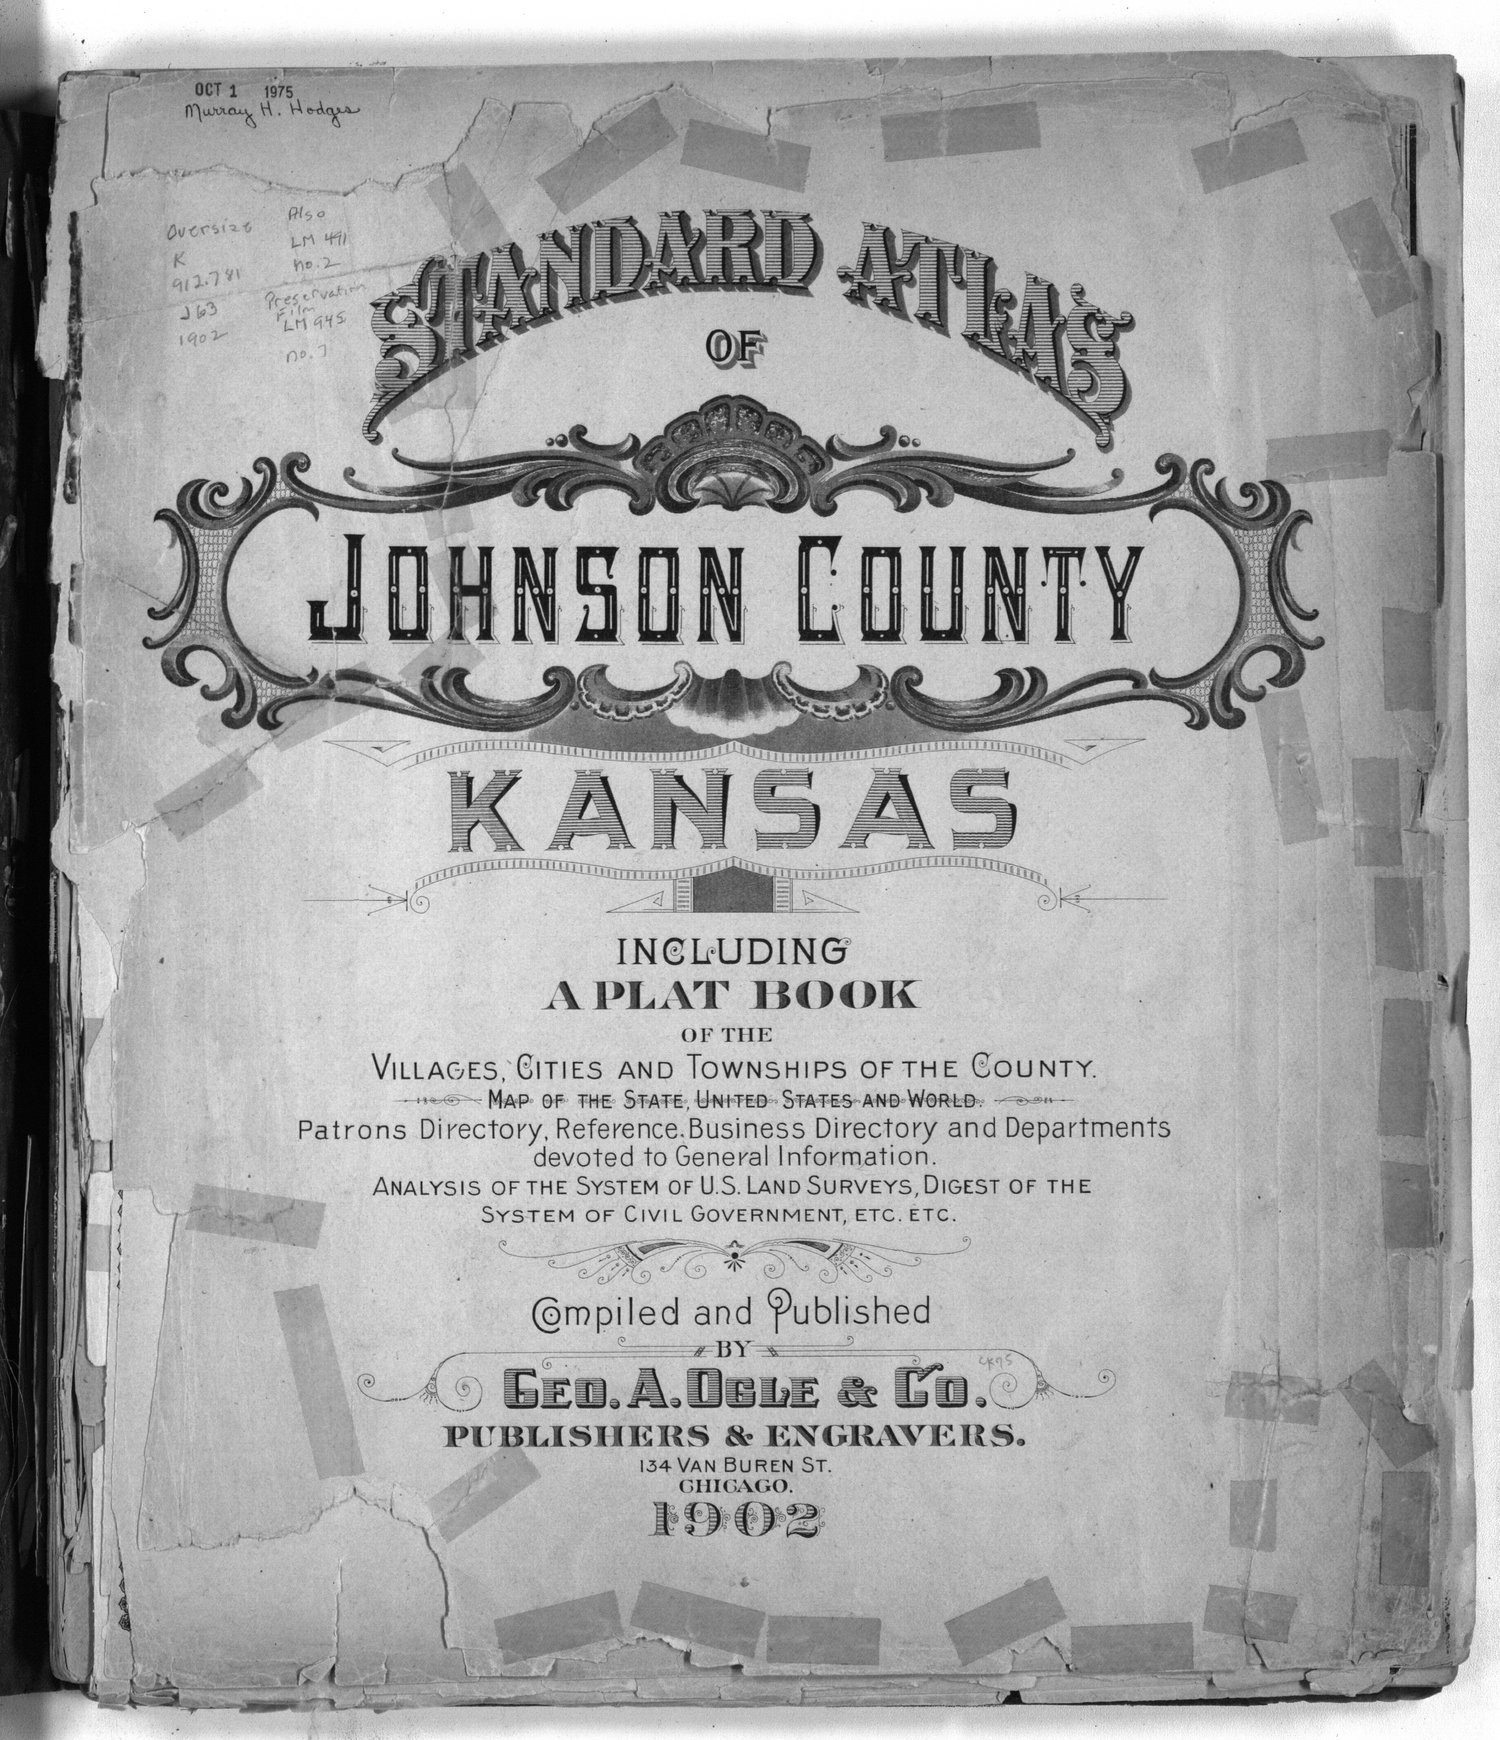 Standard atlas of Johnson County, Kansas - Title page